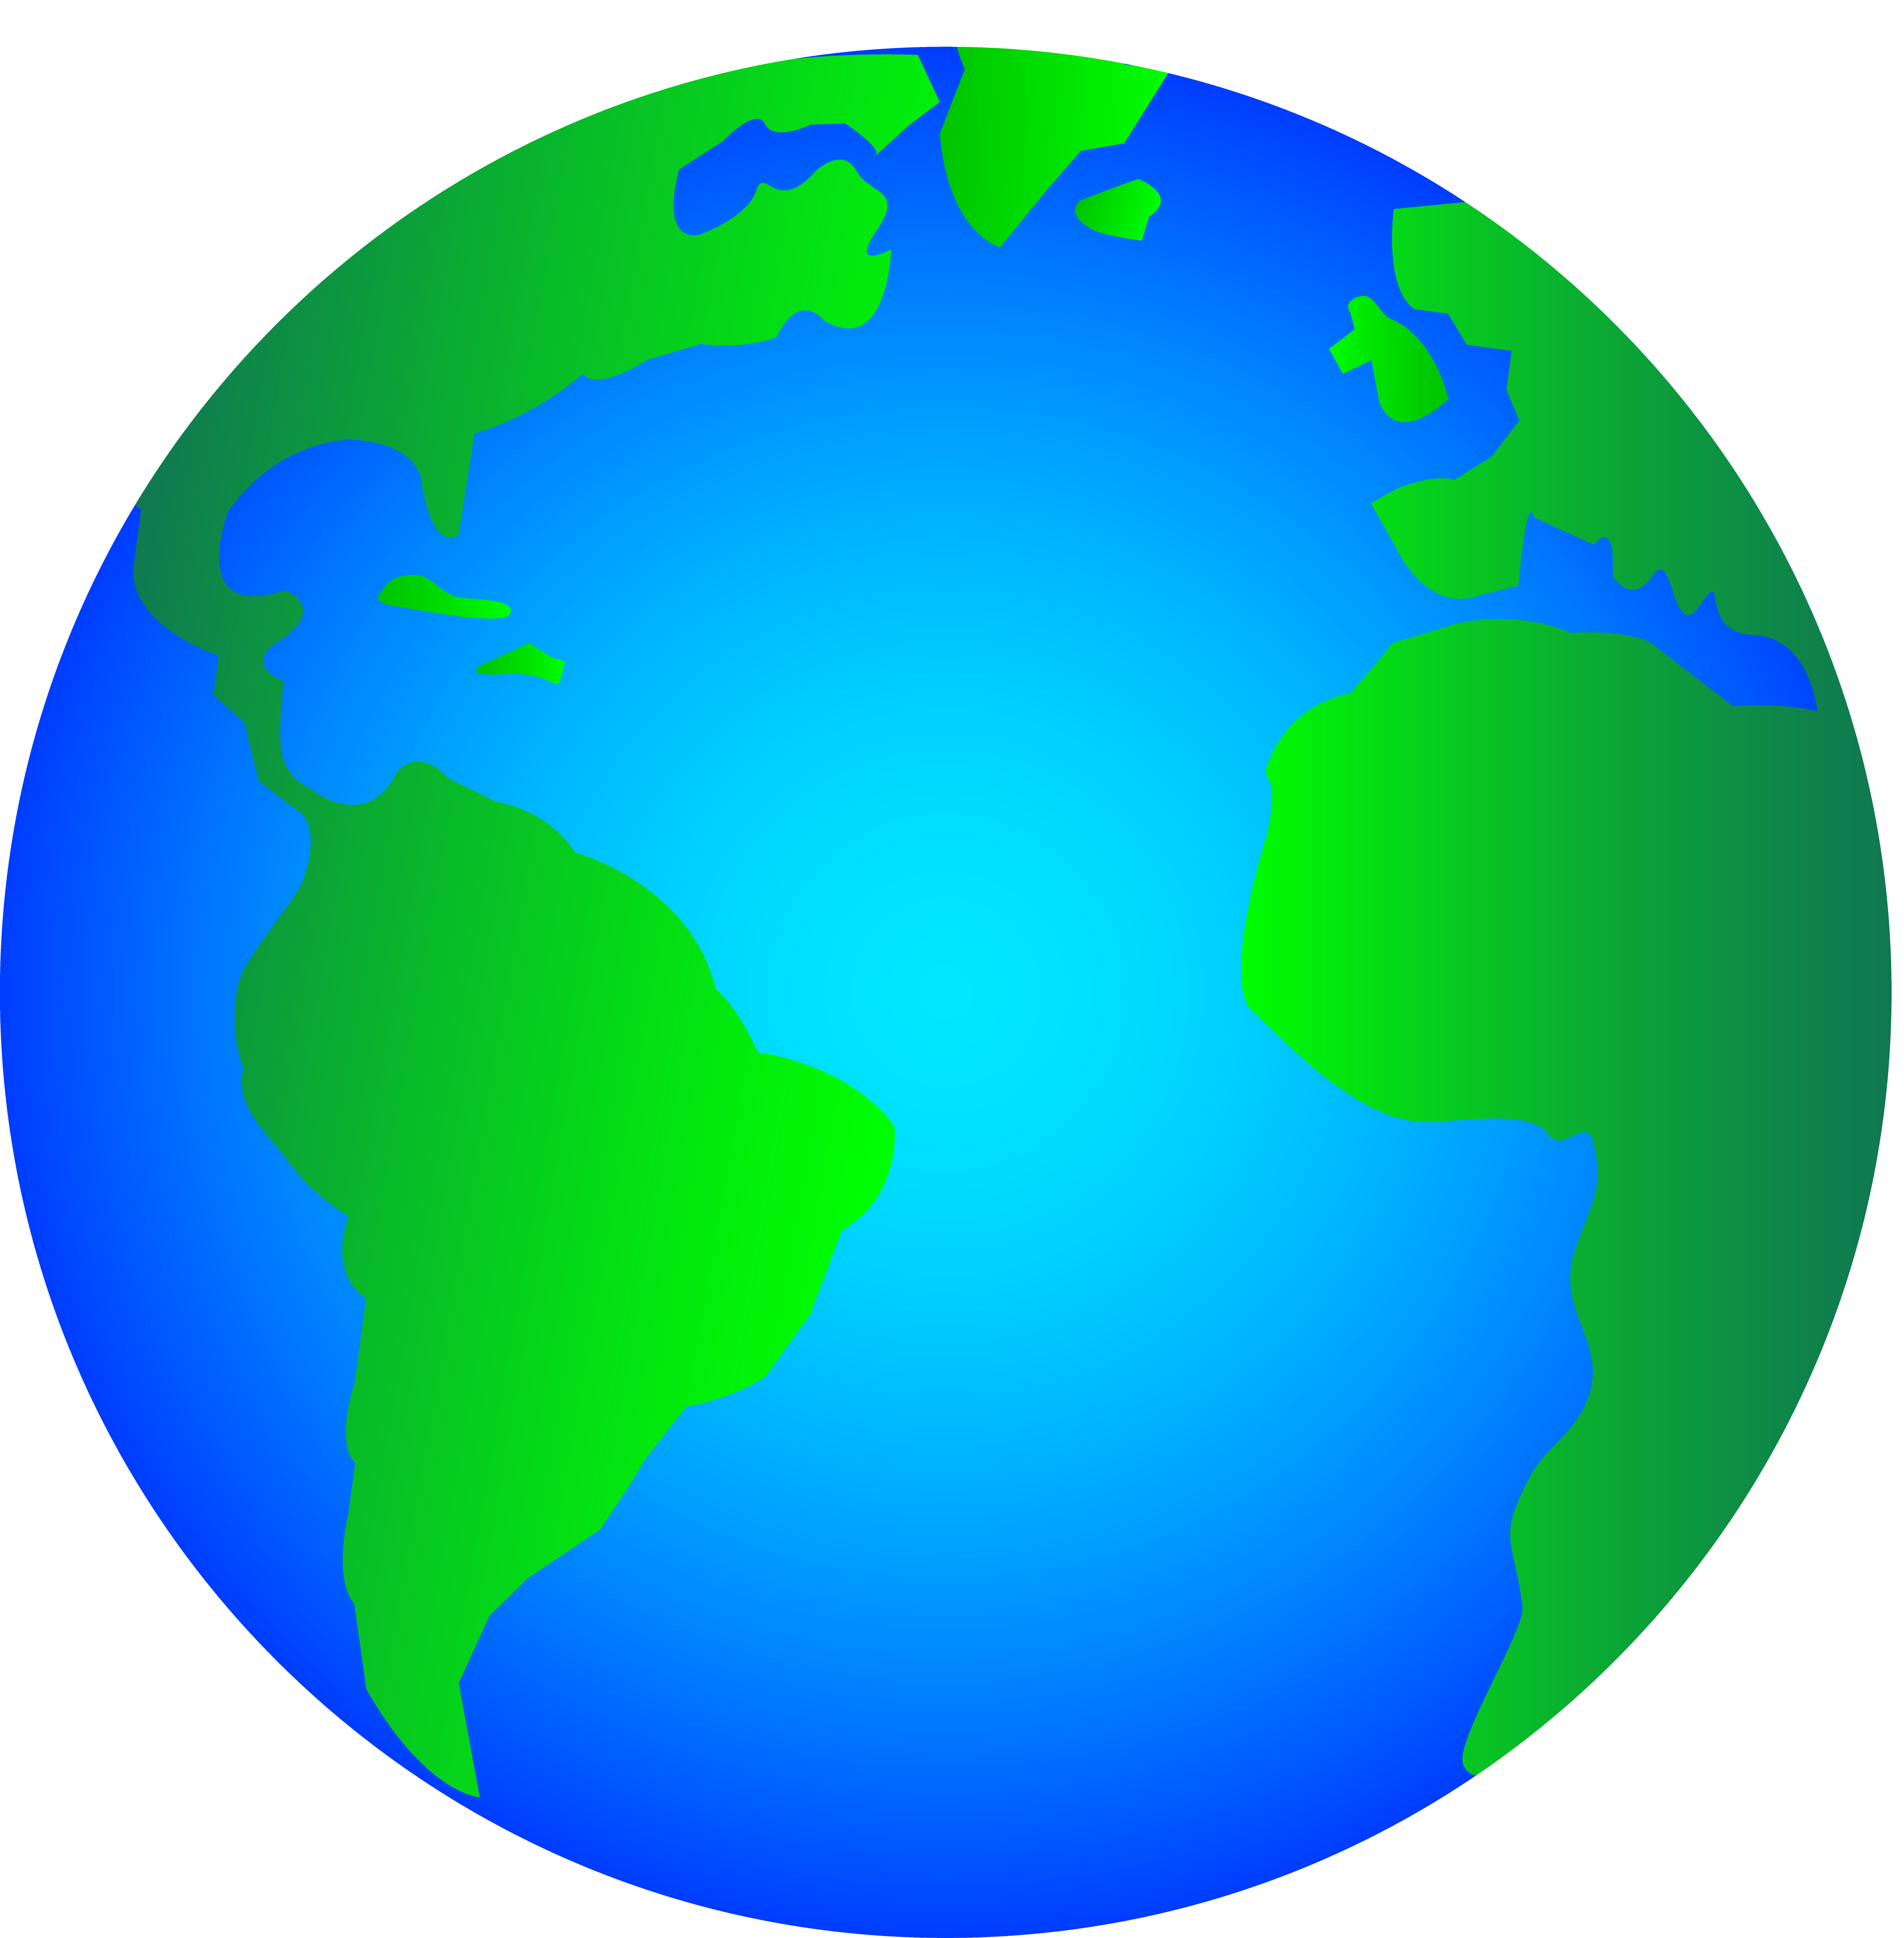 Spinning Globe Clipart #1. Globe earth cliparts